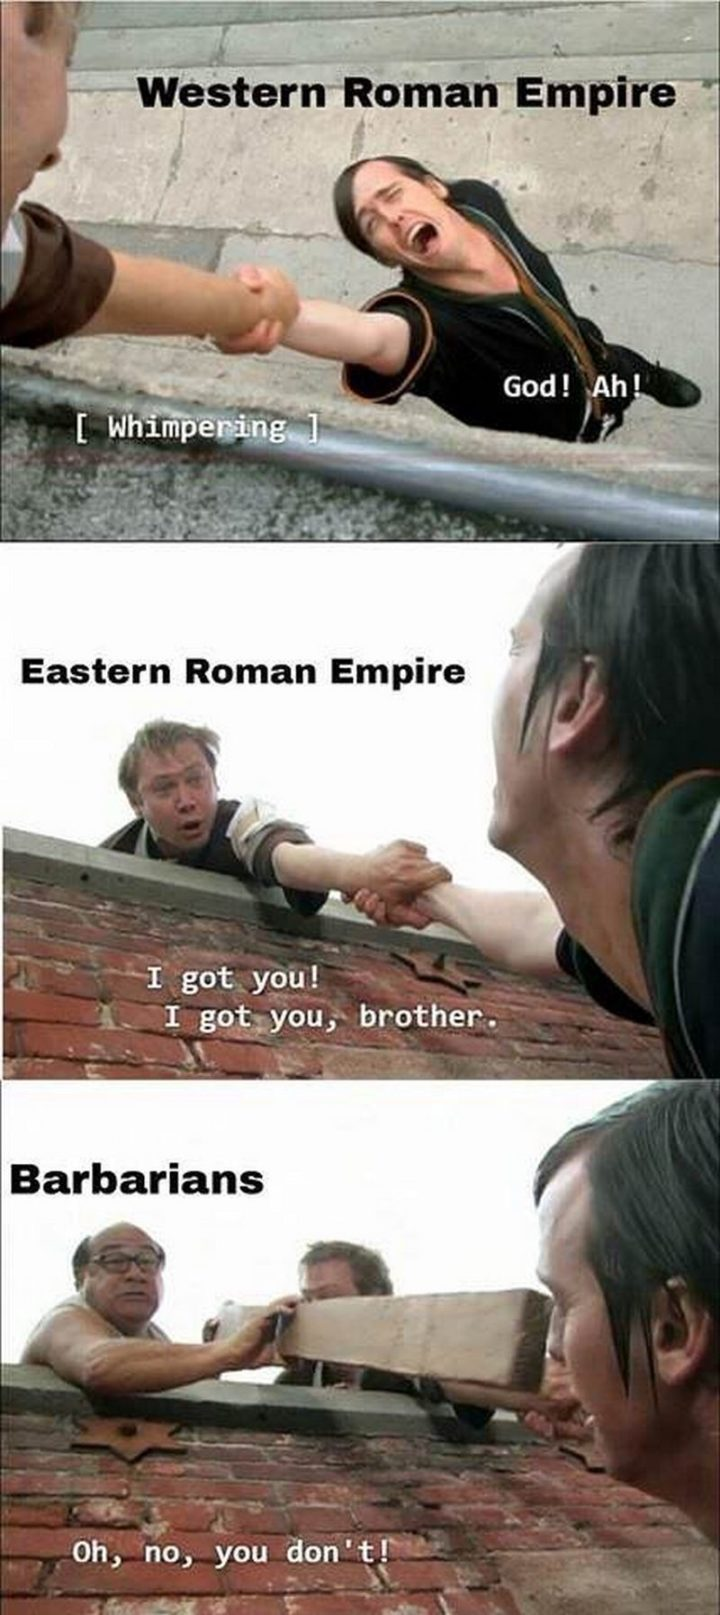 """""""Western Roman Empire: [whimpering] God! Ah! Eastern Roman Empire: I got you! I got you, brother. Barbarians: Oh, no, you don't!"""""""